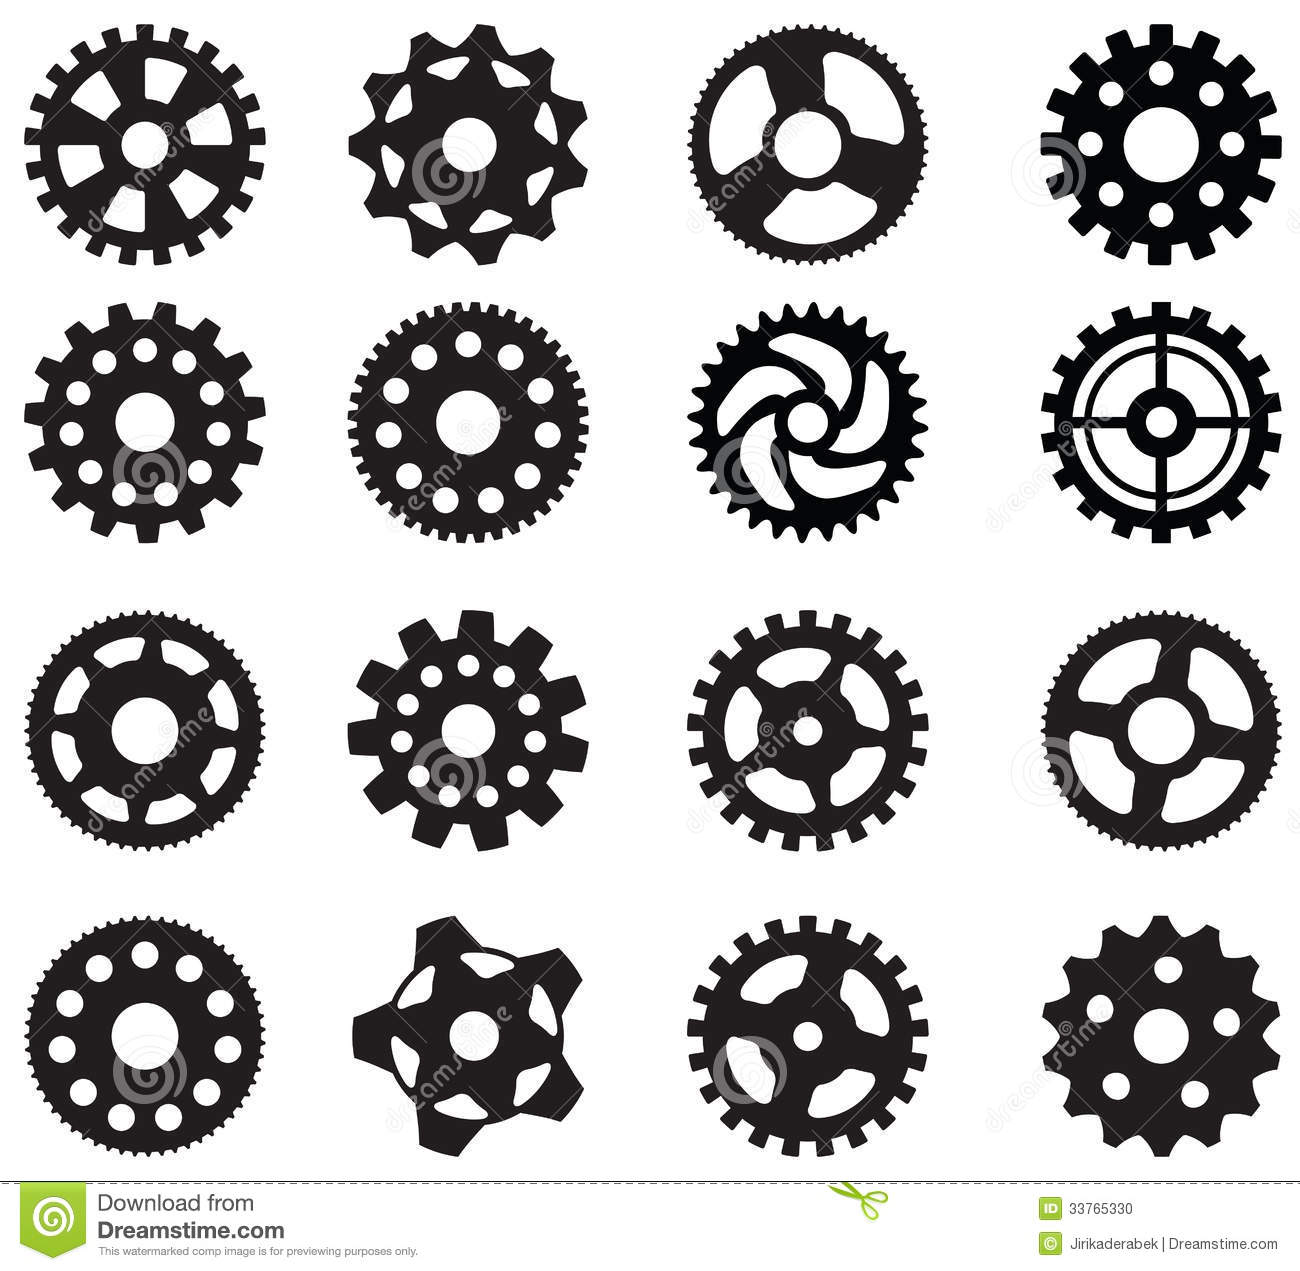 Atv Coloring Pages furthermore File Samsung Gear 2 logo together with Why Mullers Ratchet also Cogs Cog Wheel Drawing Clipart Illustration Gear as well Stock Photo Simple Vector Gears Illustration Black Cog Wheels Image33765330. on simple gear template